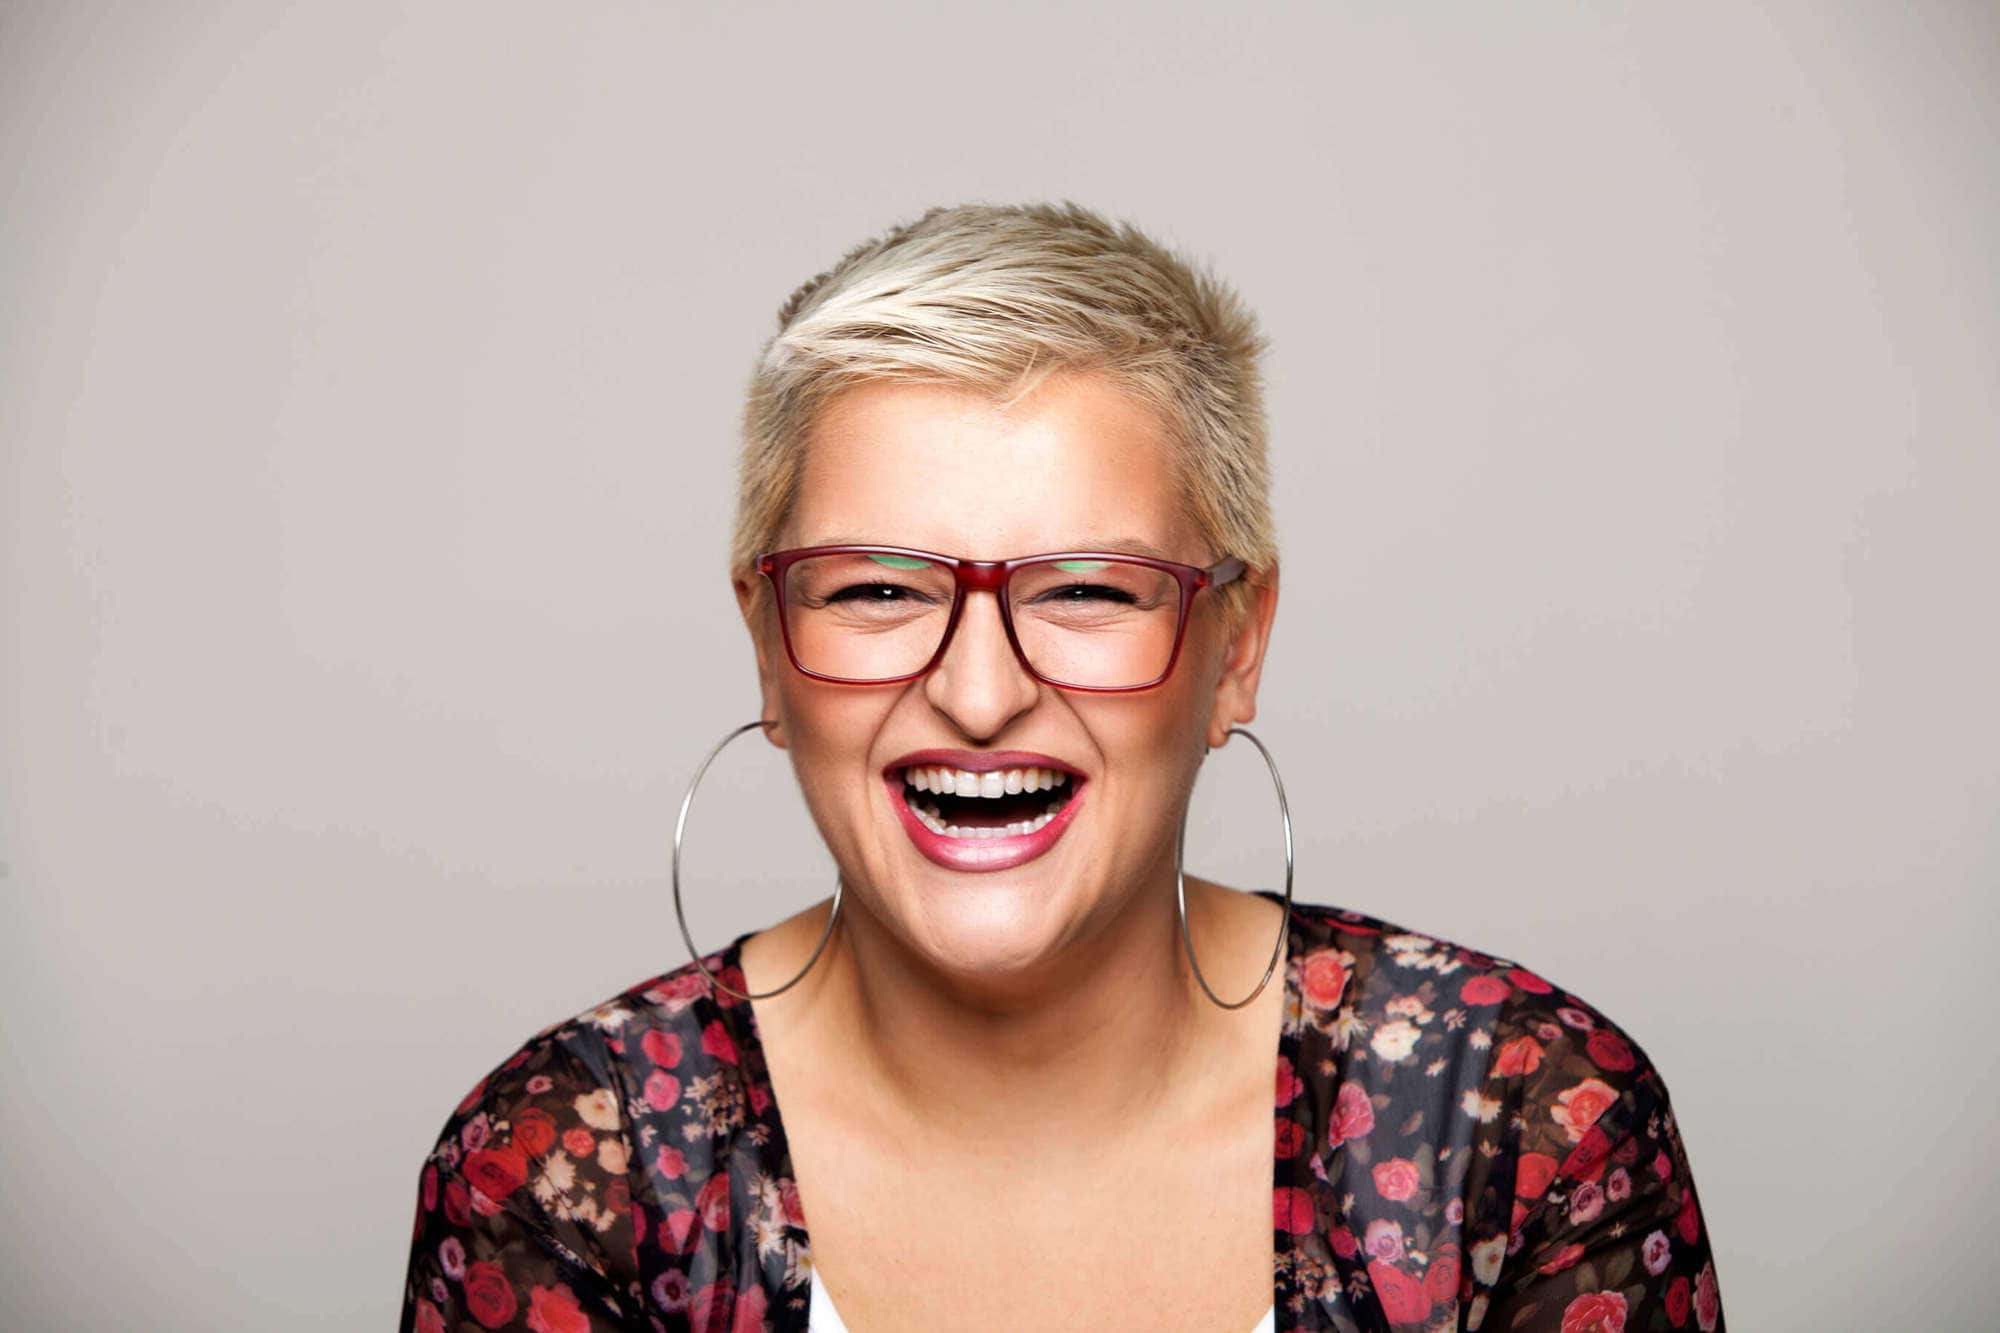 5 Cool Shoulder Length And Short Haircuts For Women Over 40 Intended For Short Haircuts For Women Who Wear Glasses (View 19 of 25)